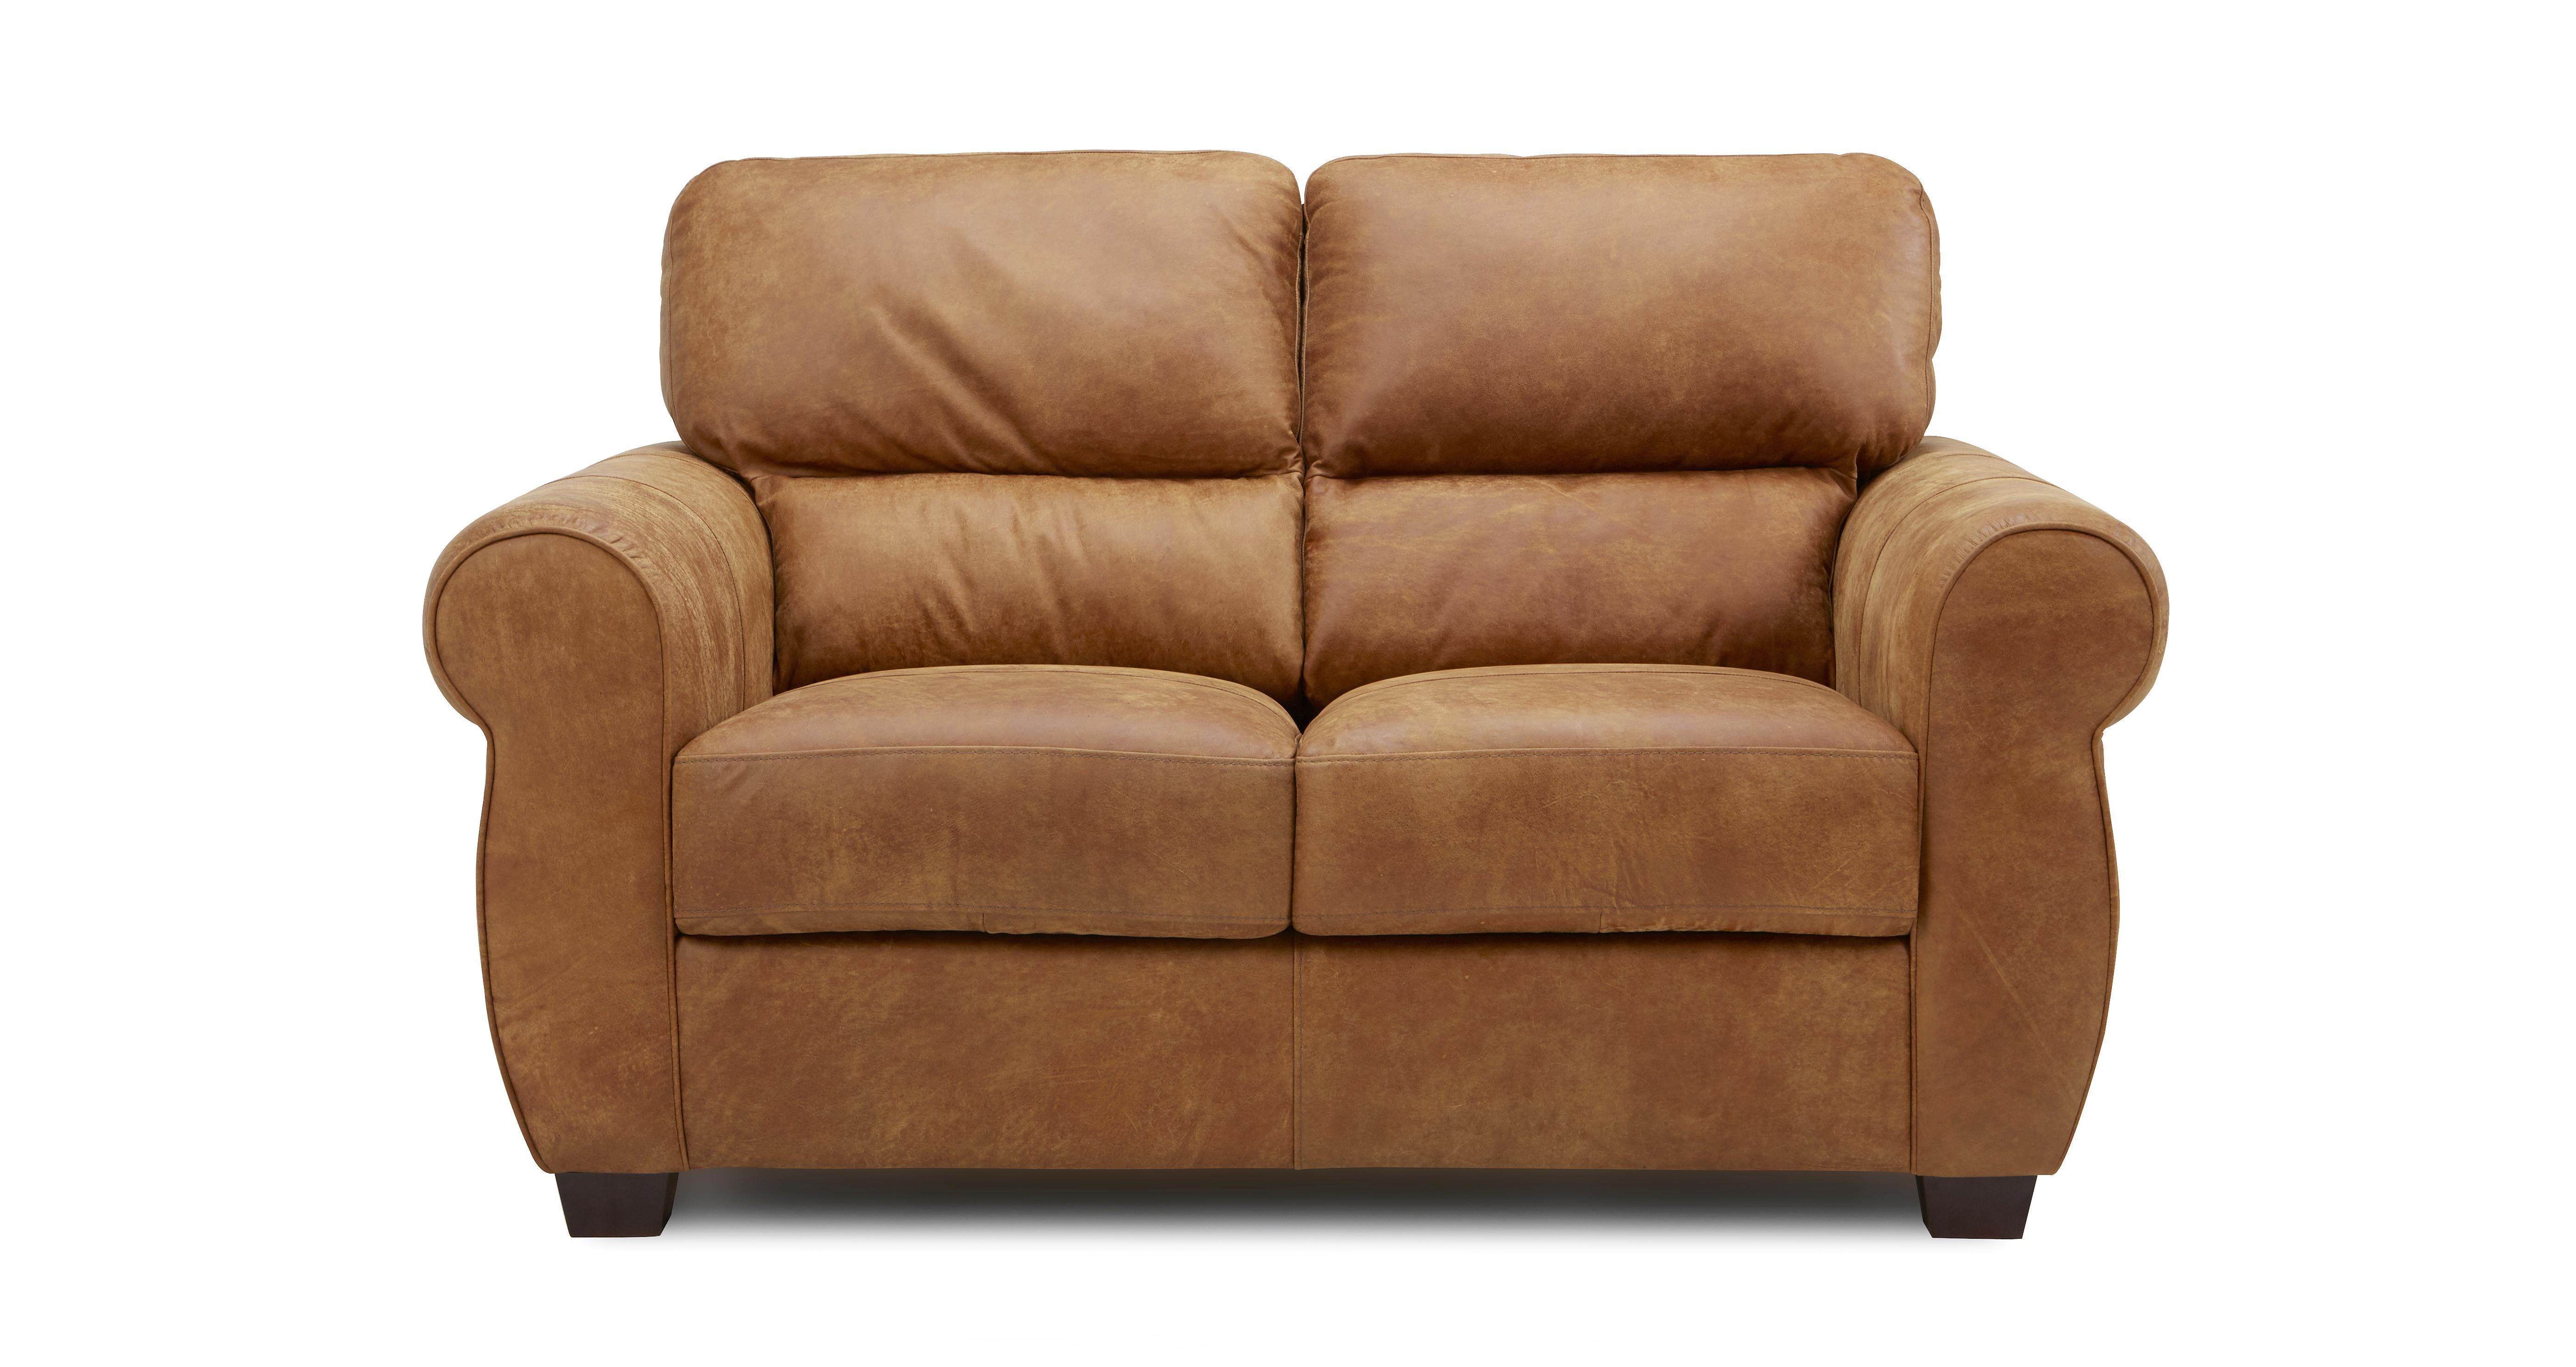 small 2 seater sofa bed drink holder senzo saddle dfs